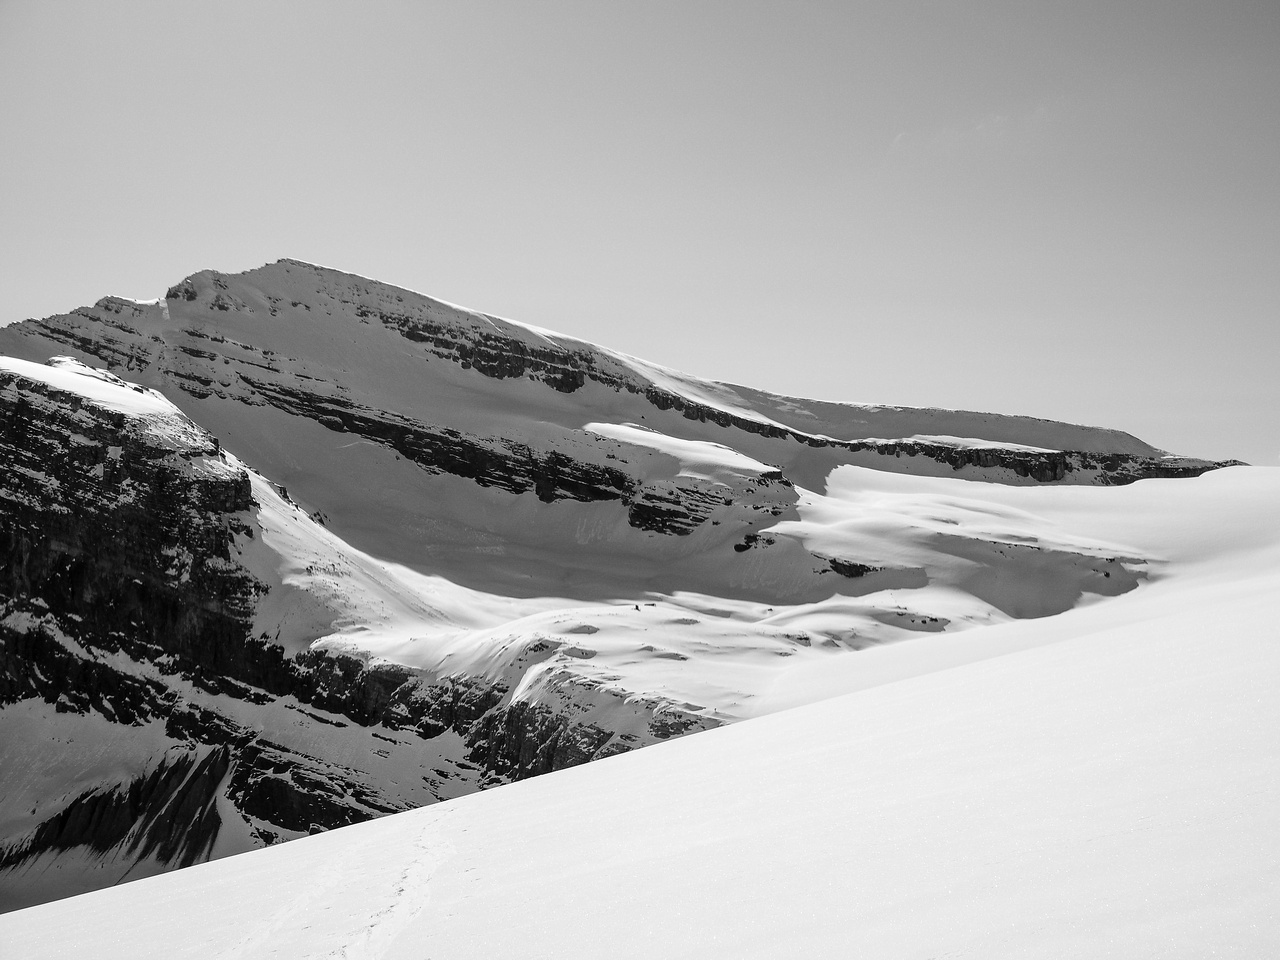 Looking back over Peyto Hut with Thompson rising above.